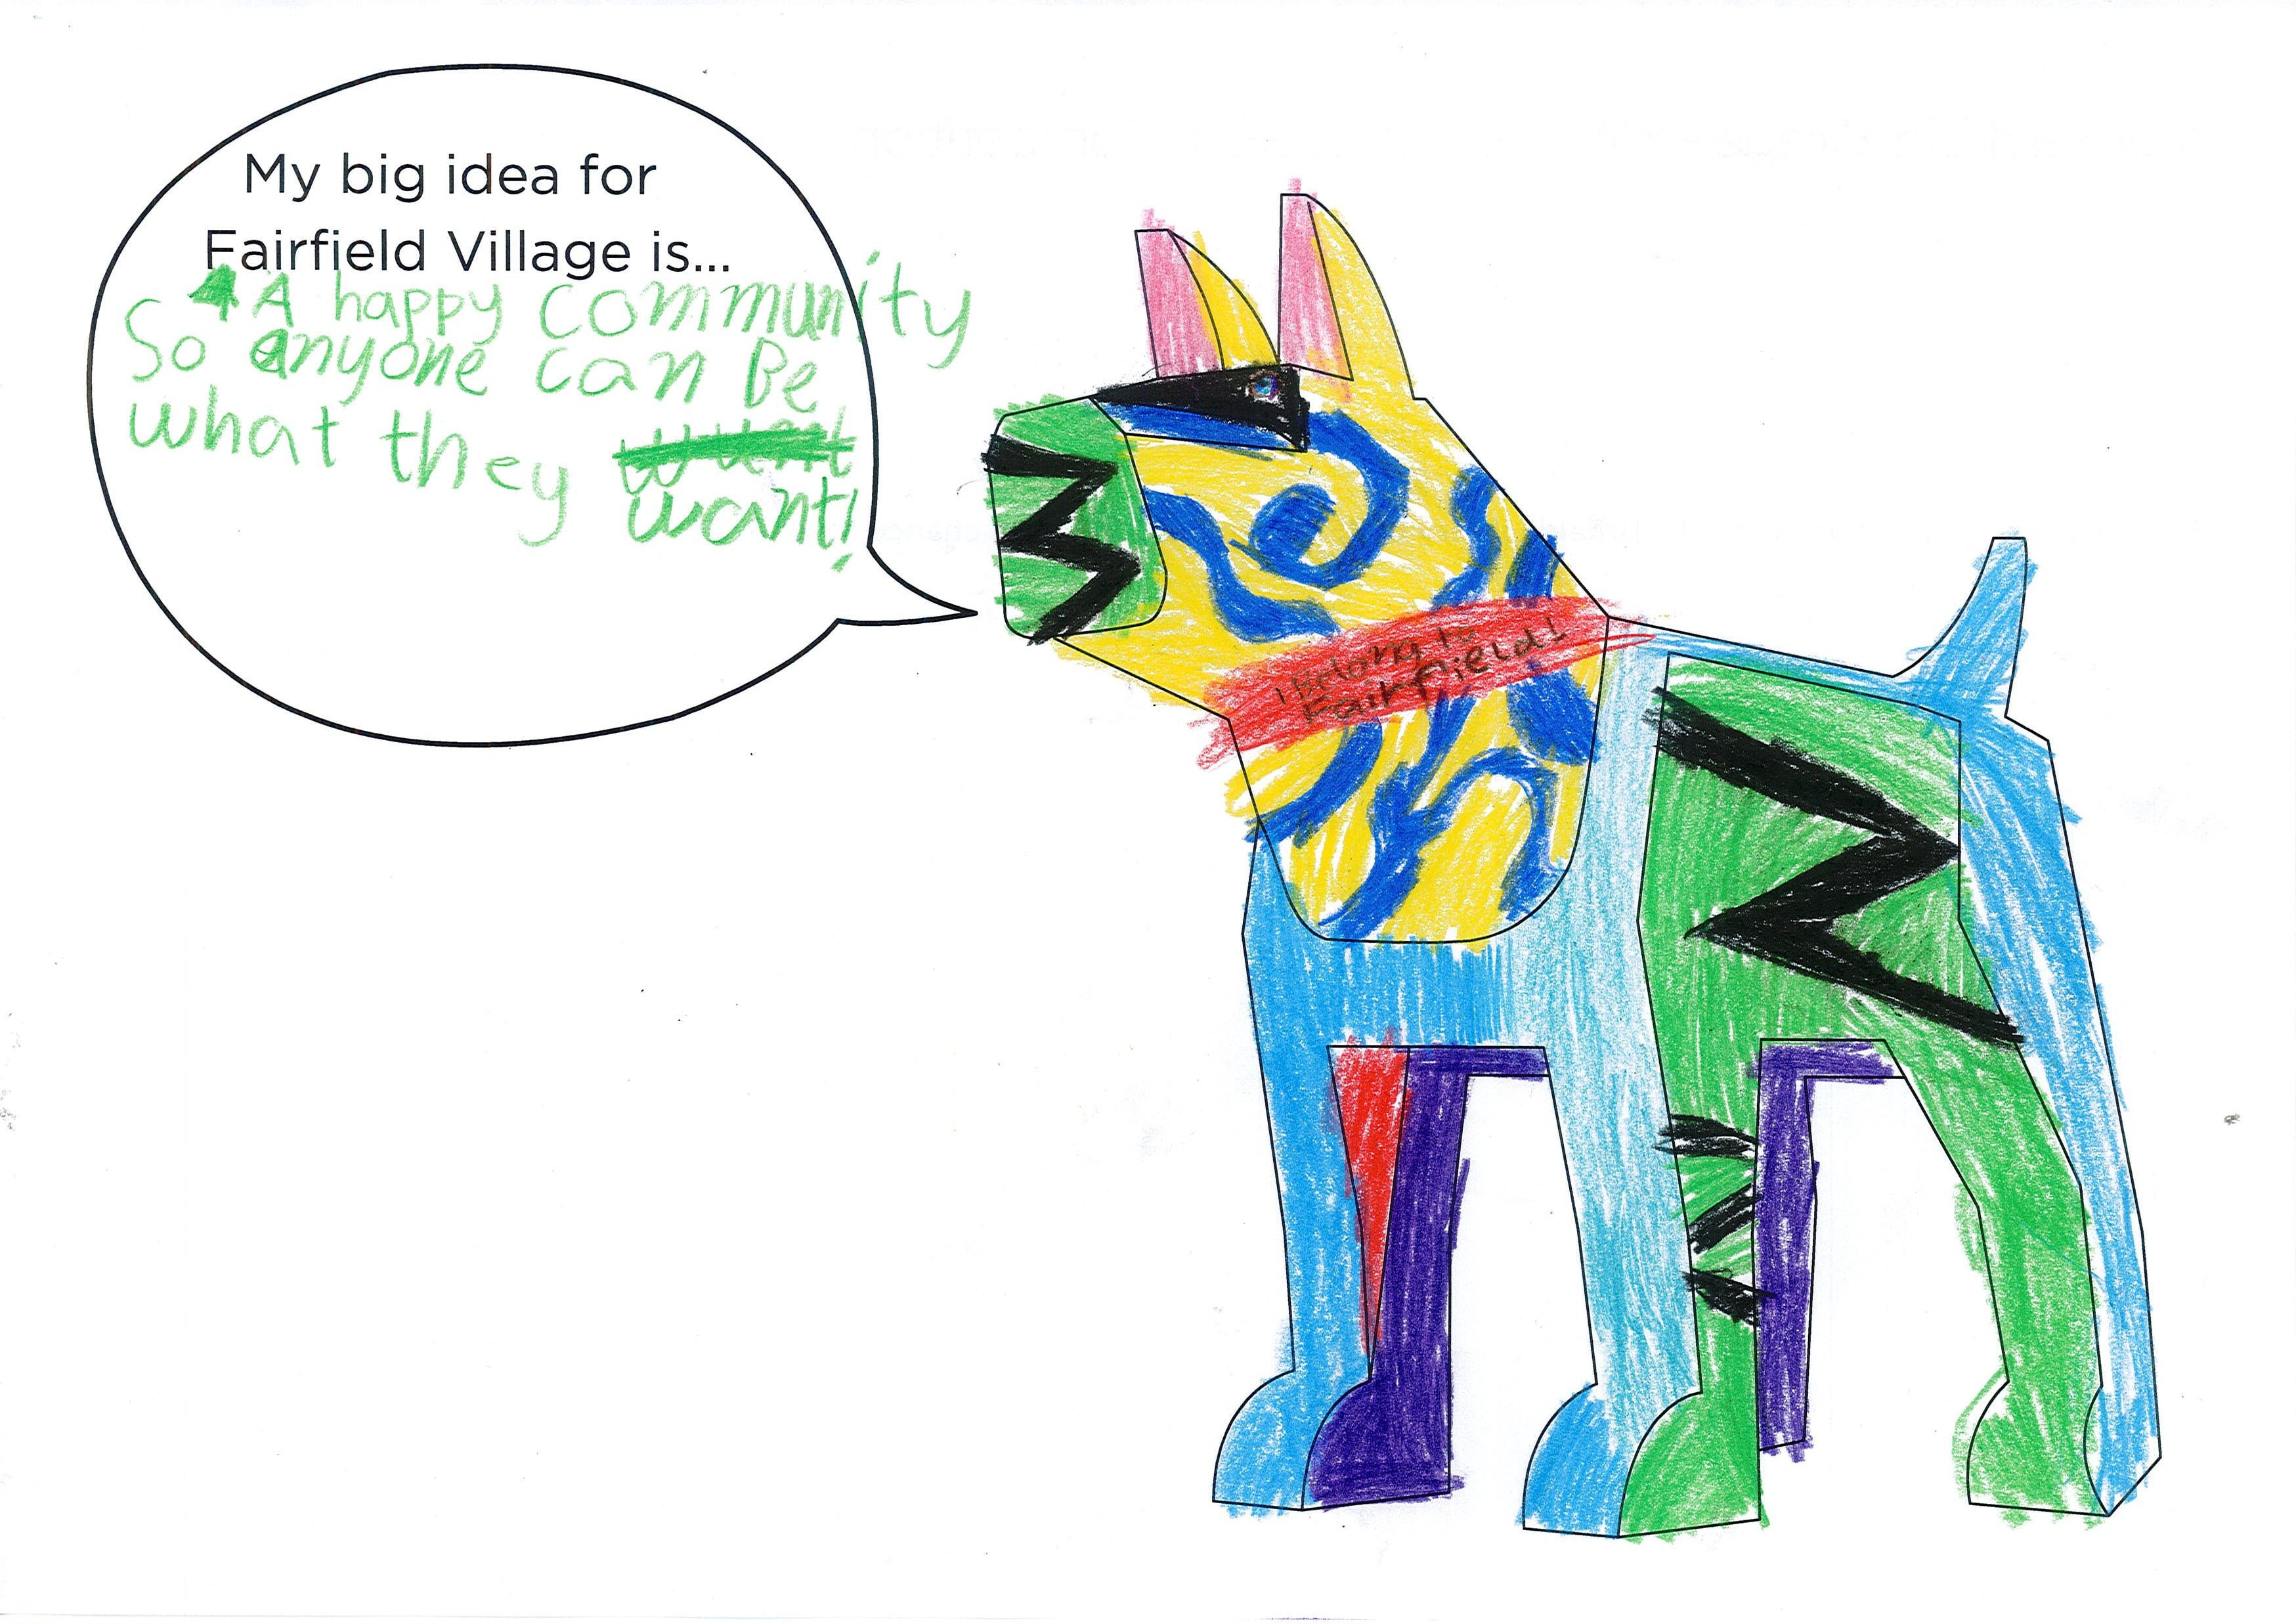 Winner in FIDO Ideas and Colouring Compeition, December 2016 - Amelia Age 9